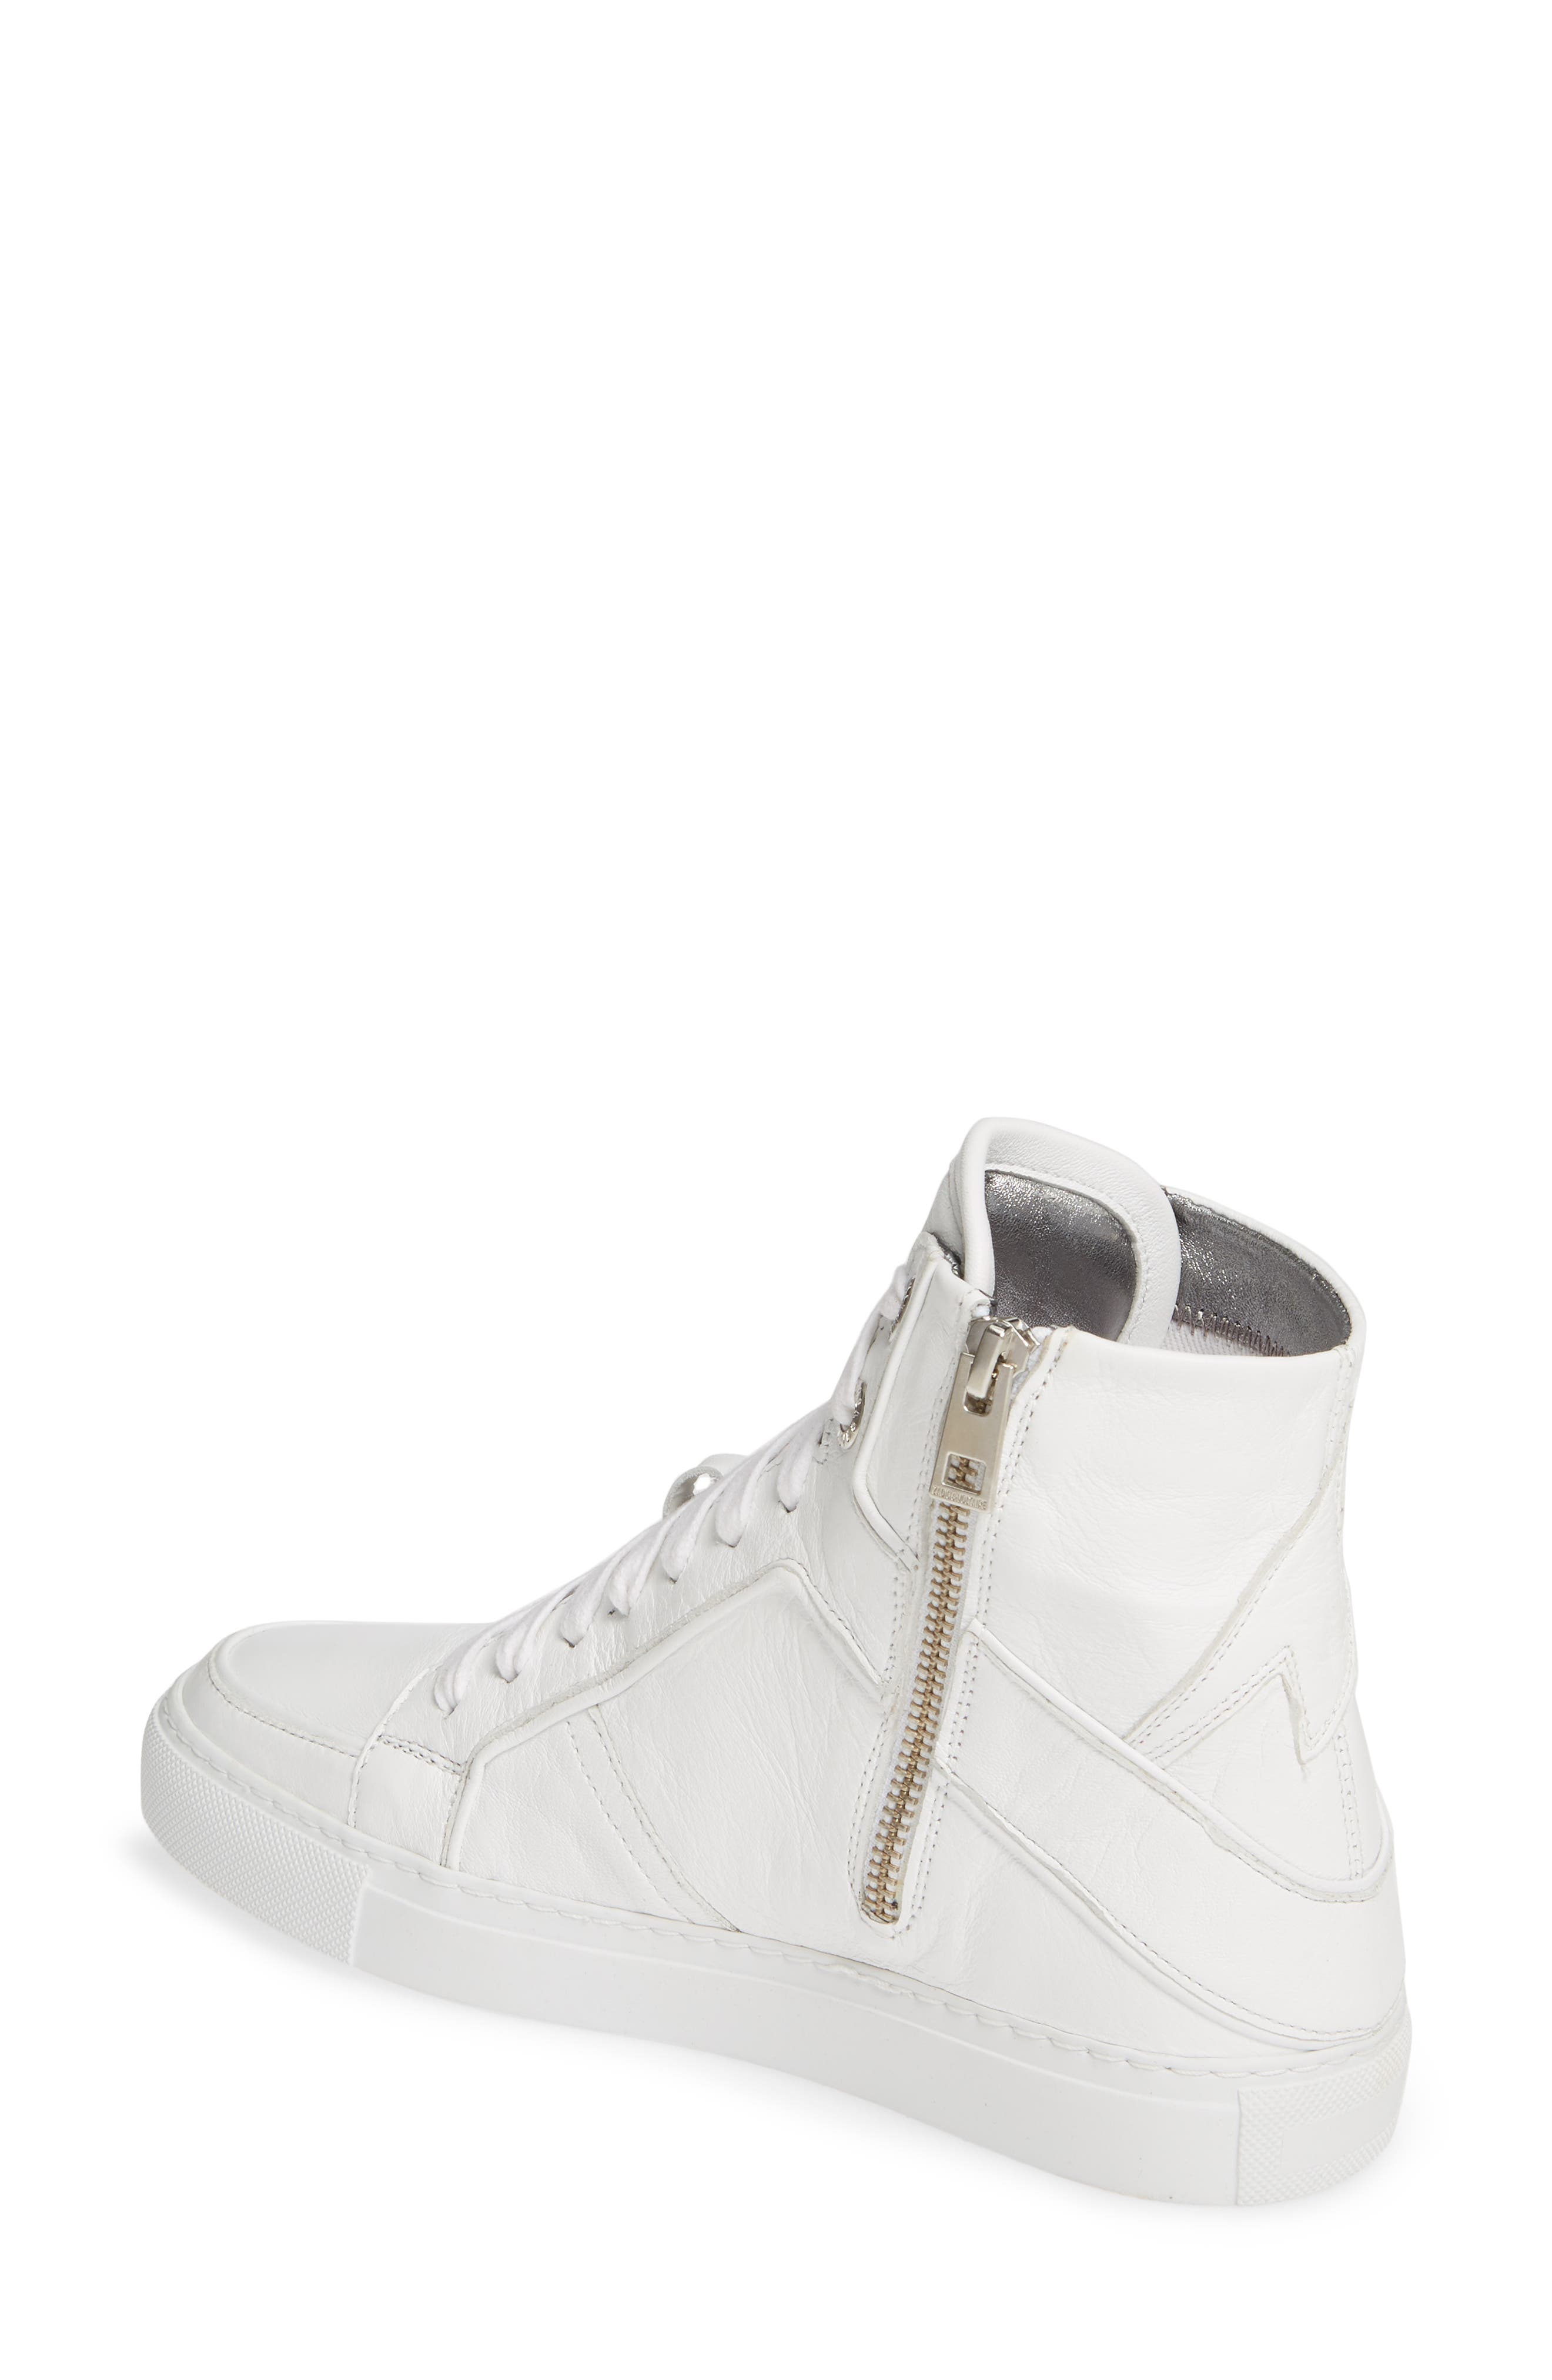 ZADIG & VOLTAIRE, Flash High Top Sneaker, Alternate thumbnail 2, color, BLANC